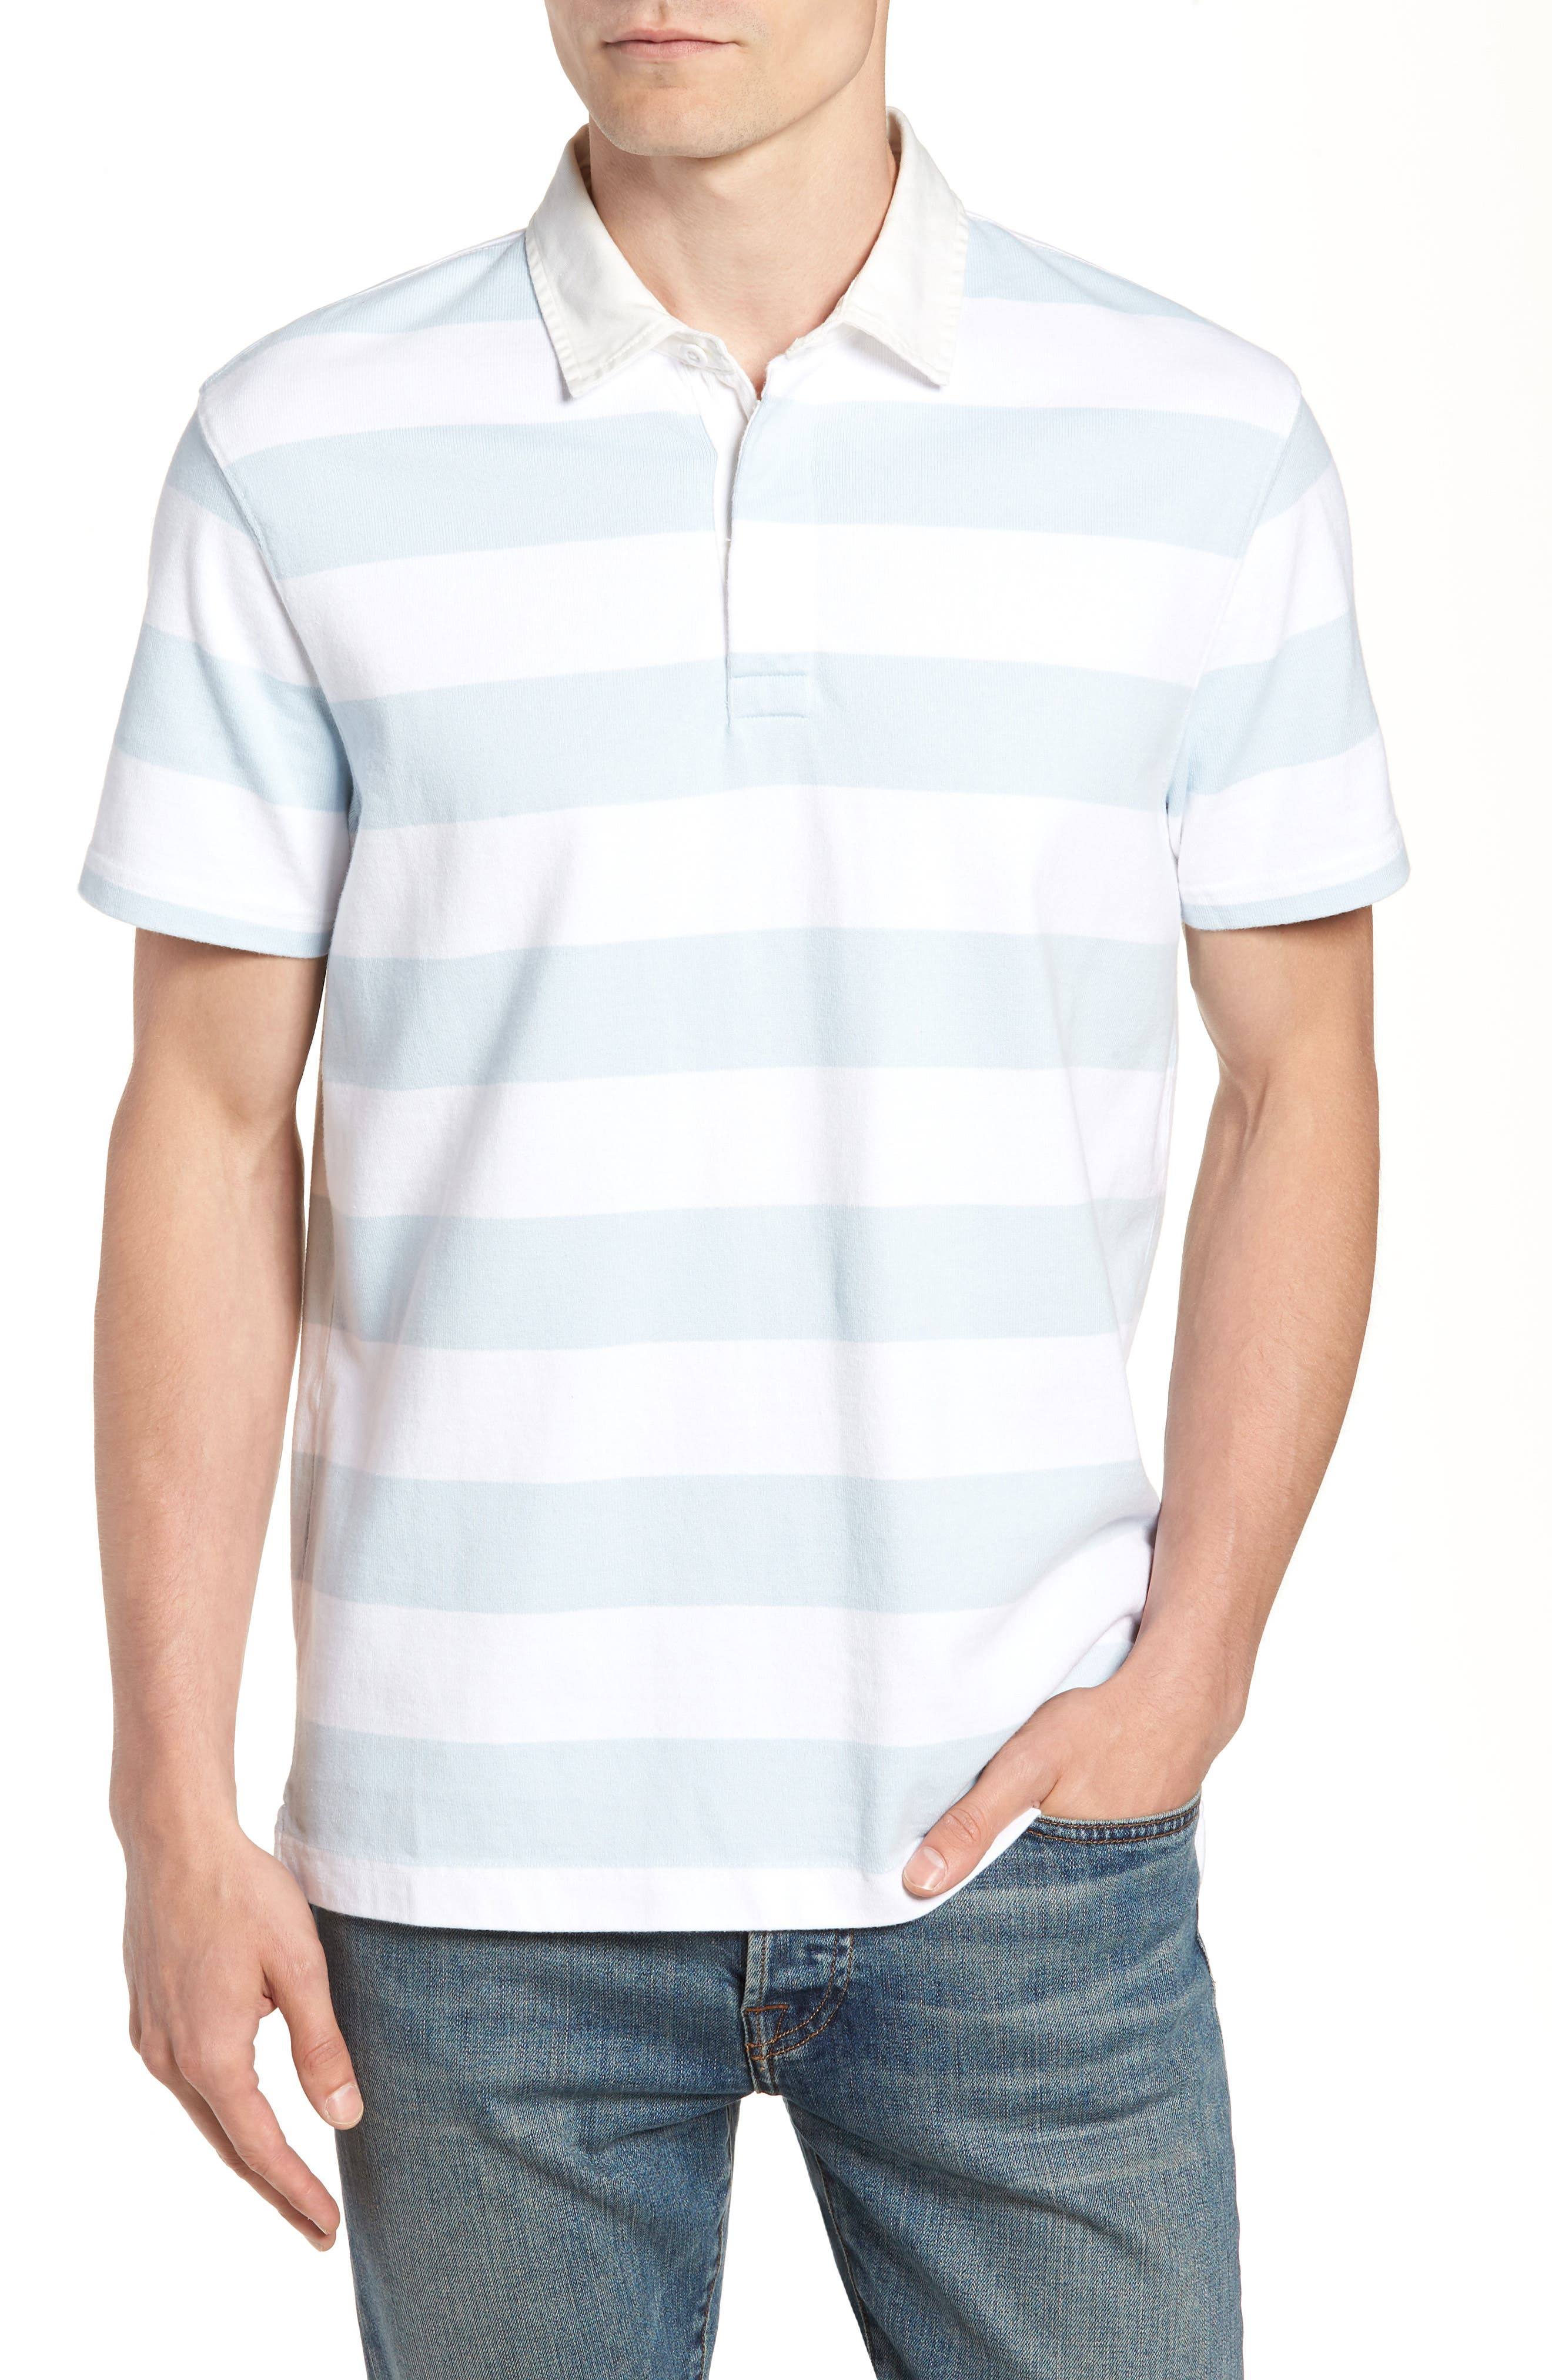 J.CREW 1984 Rugby Shirt, Main, color, 100